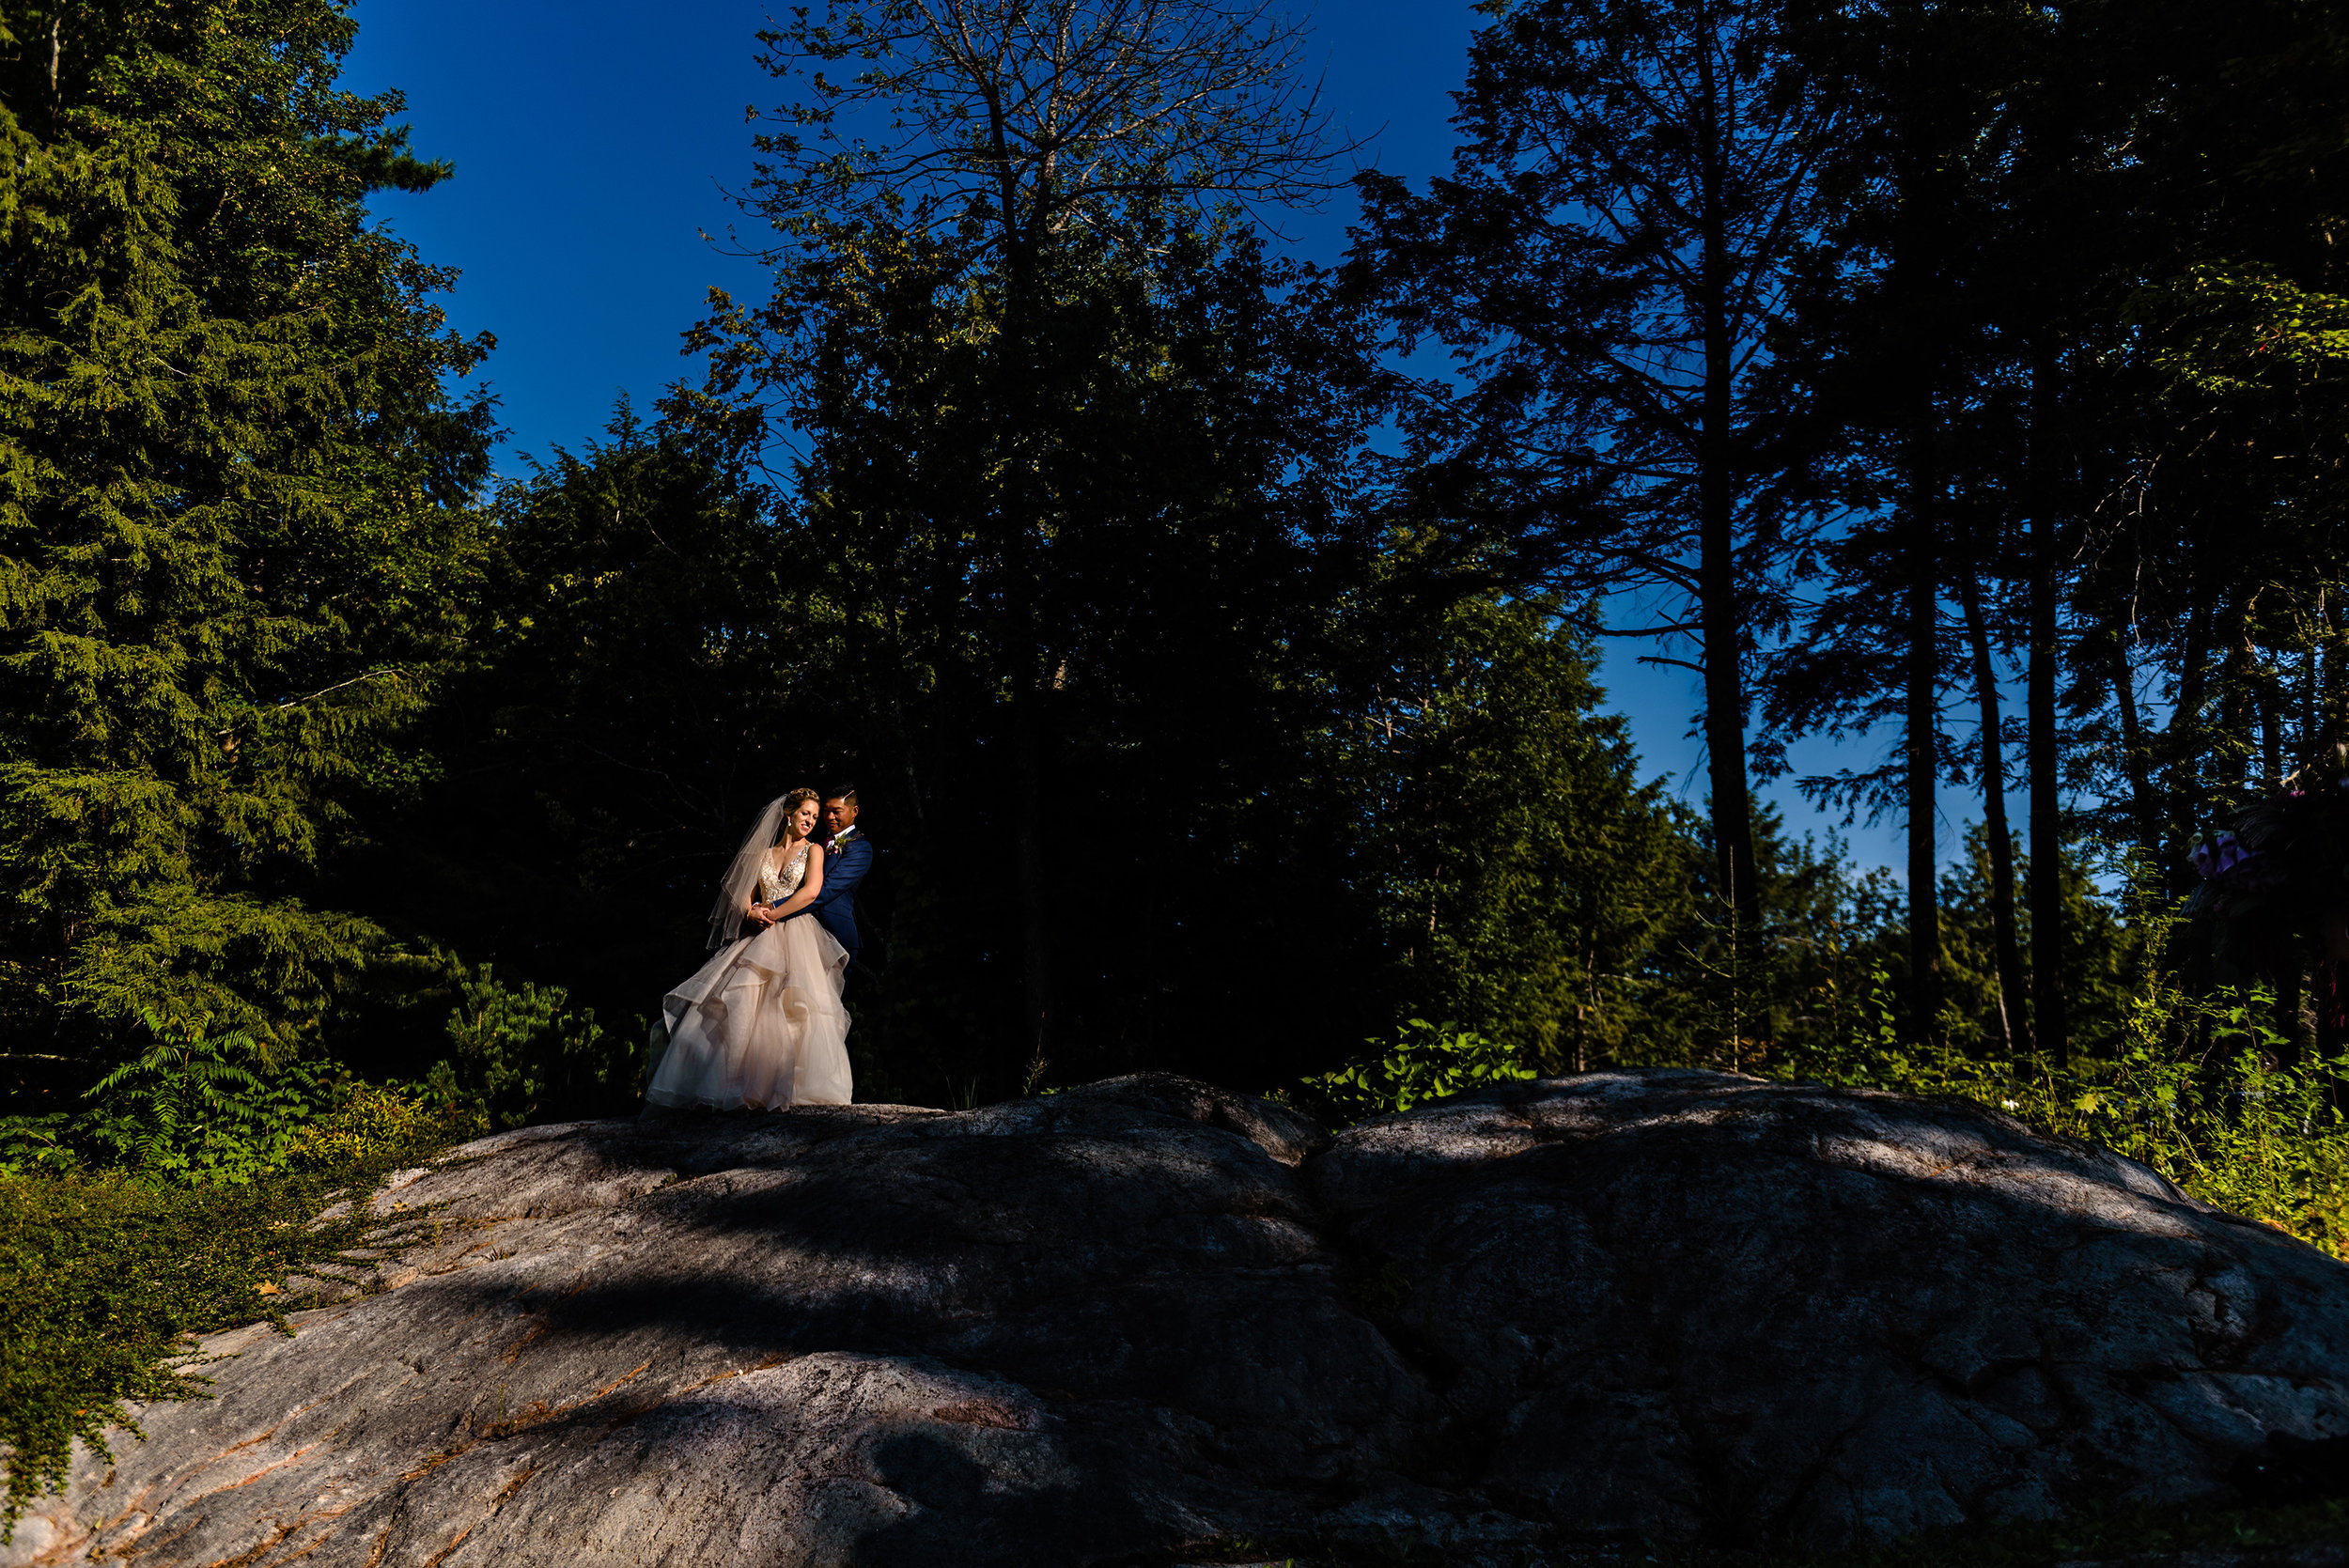 bride-and-groom-sunset-portrait-at-a-le-belvedere-wedding-in-wakefield-quebec.jpg